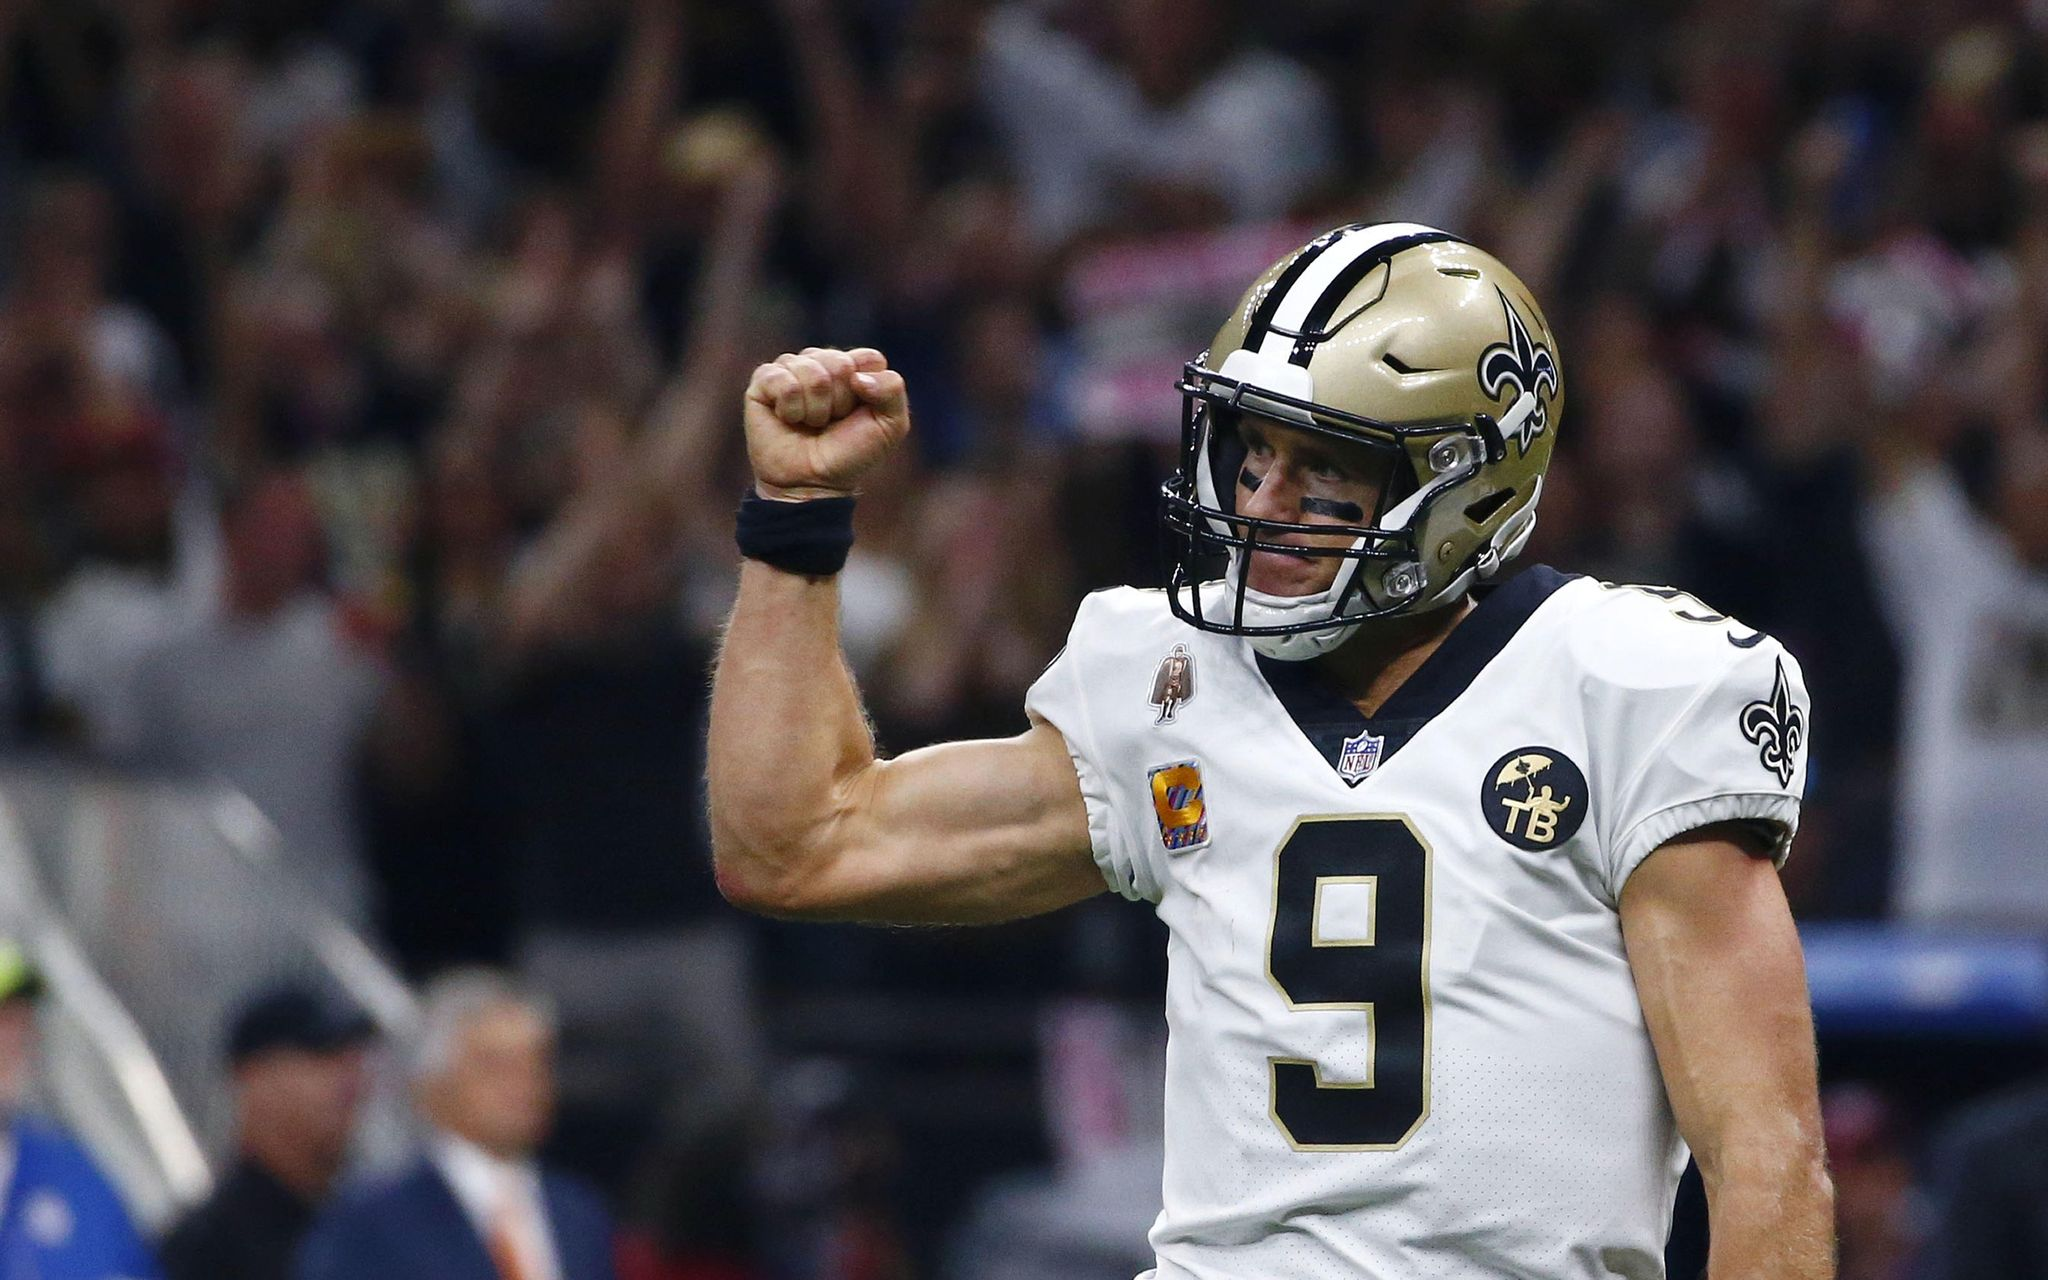 Drew Brees breaks all-time passing yards mark - Washington Times